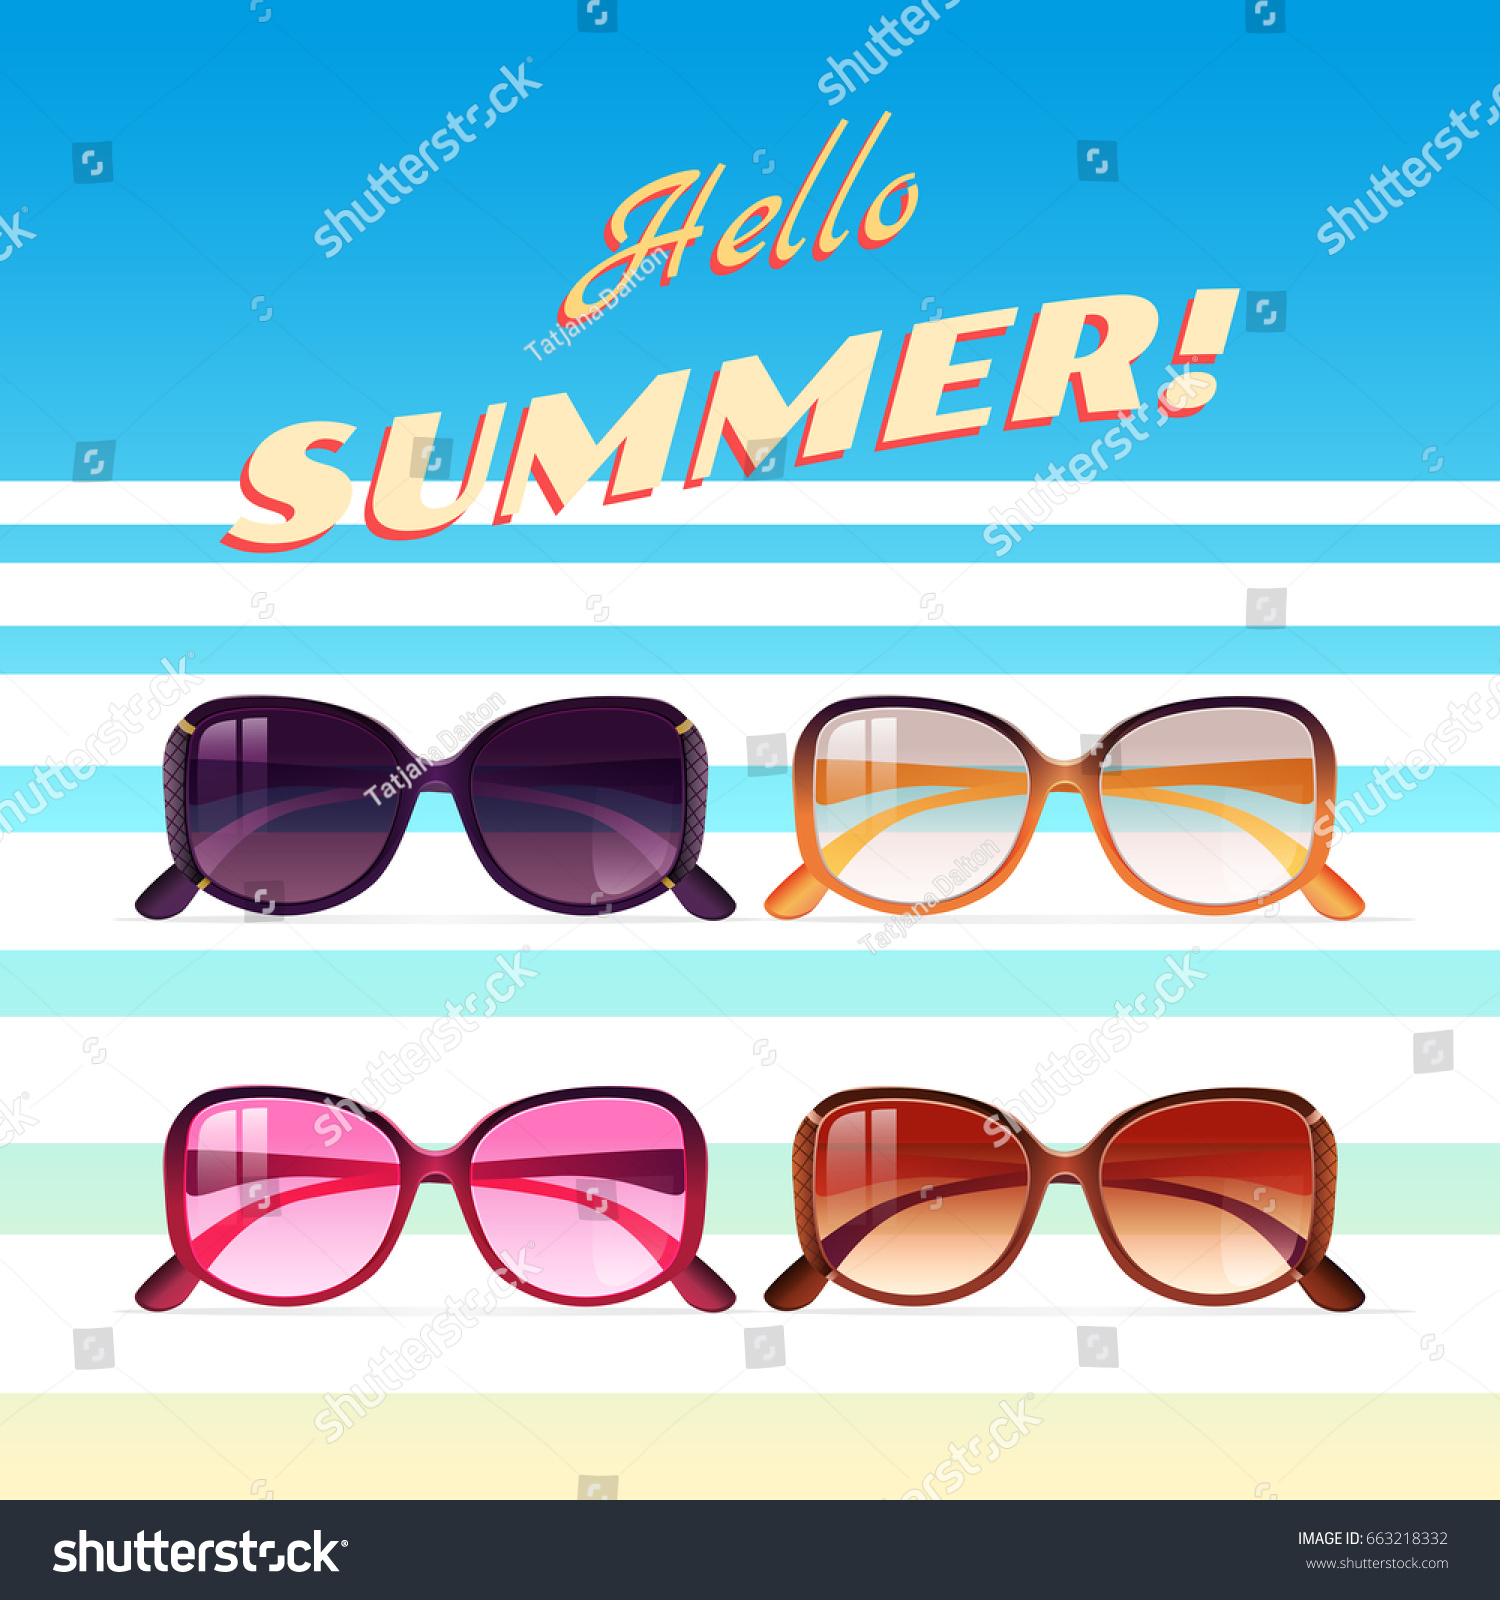 Hello Summer Illustration. Hello Summer Text Title. Poster Design With  Realistic Vector Sunglasses In